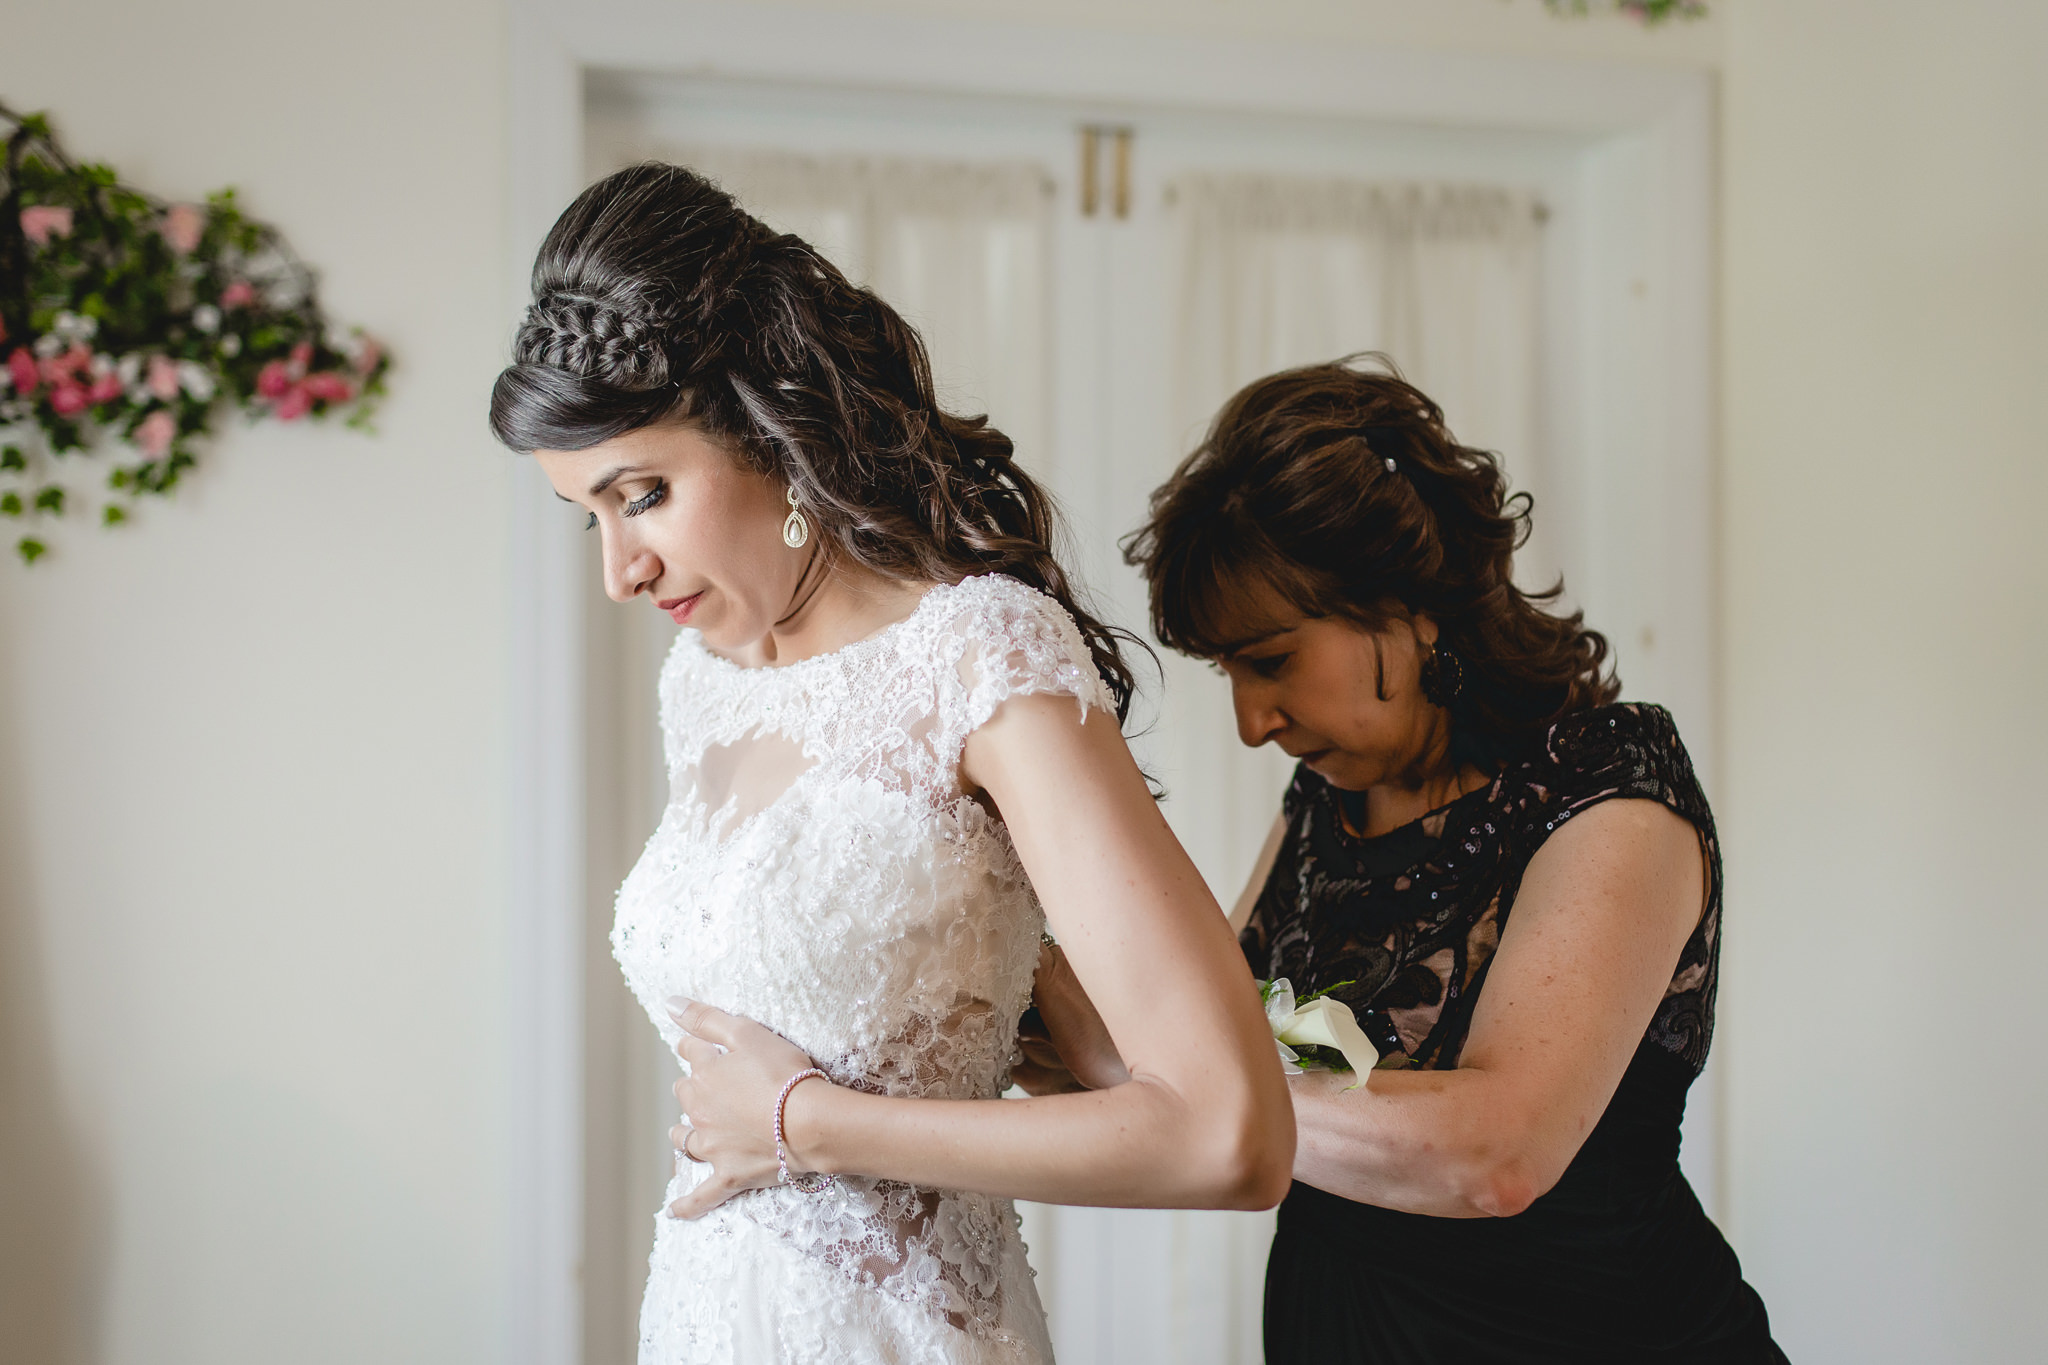 Mother of the bride helps the bride get into her dress at Greystone Fields